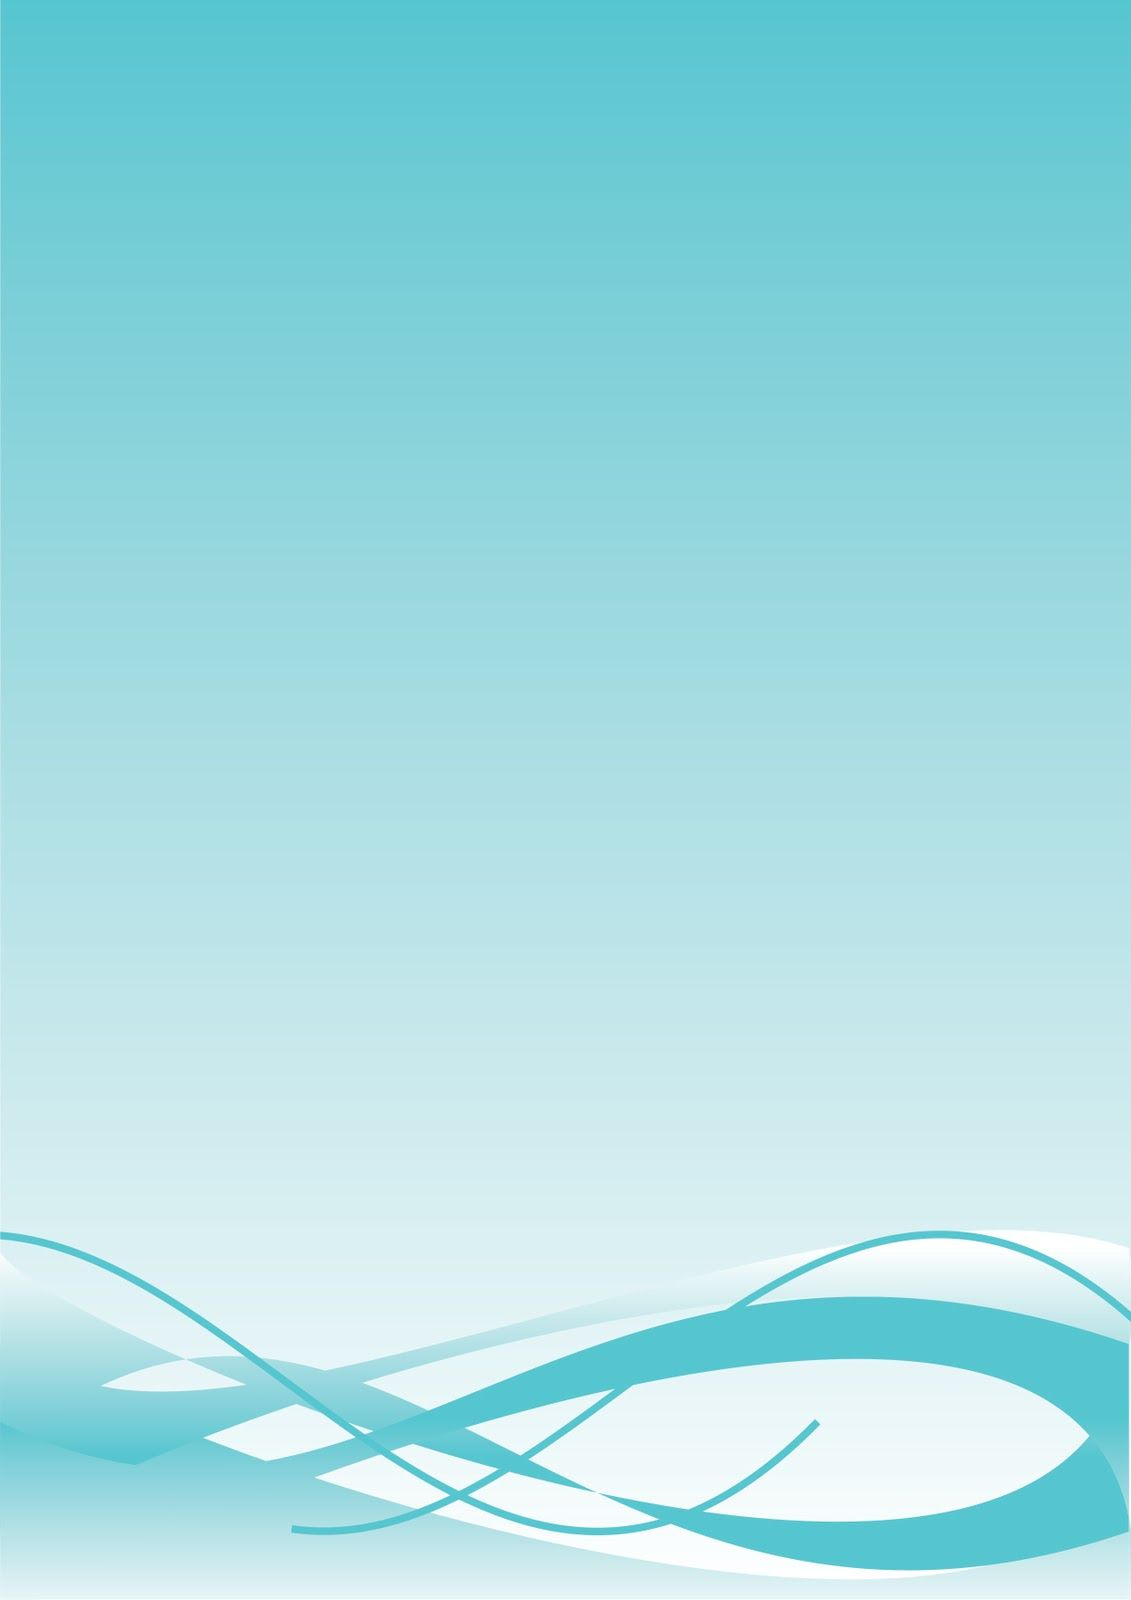 Poster background download